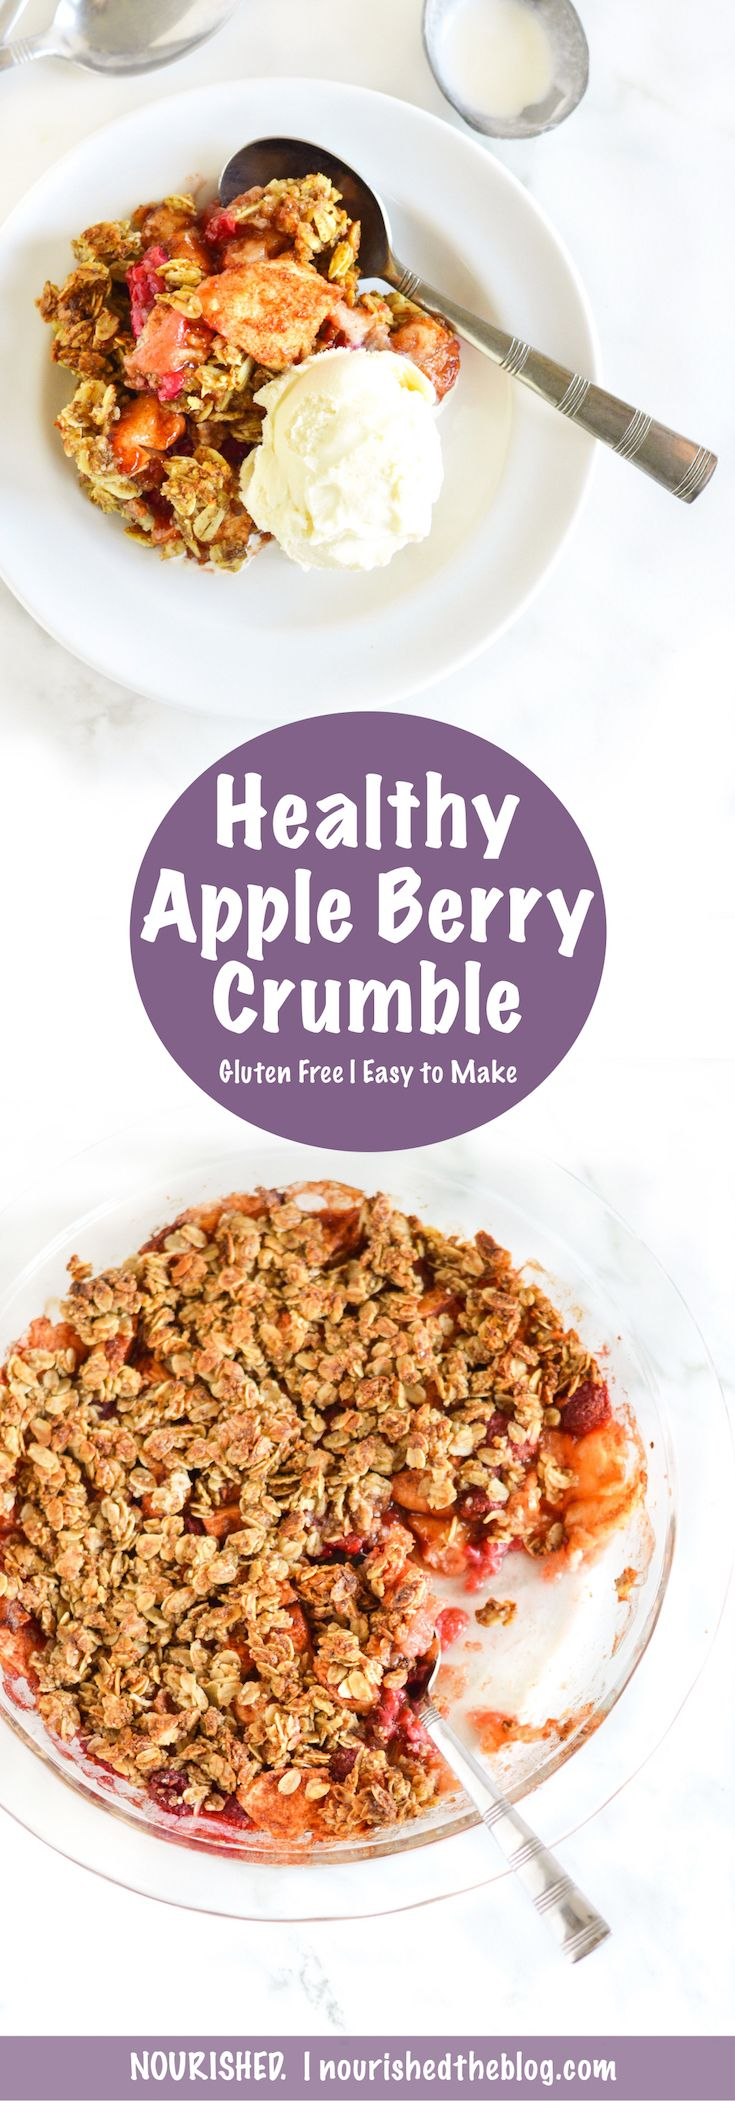 A Healthy Apple Berry Crumble recipe made with fall-fresh cinnamony apples and slightly sweetened raspberries topped with a gluten free oat and almond crumble topping that's best served warm.